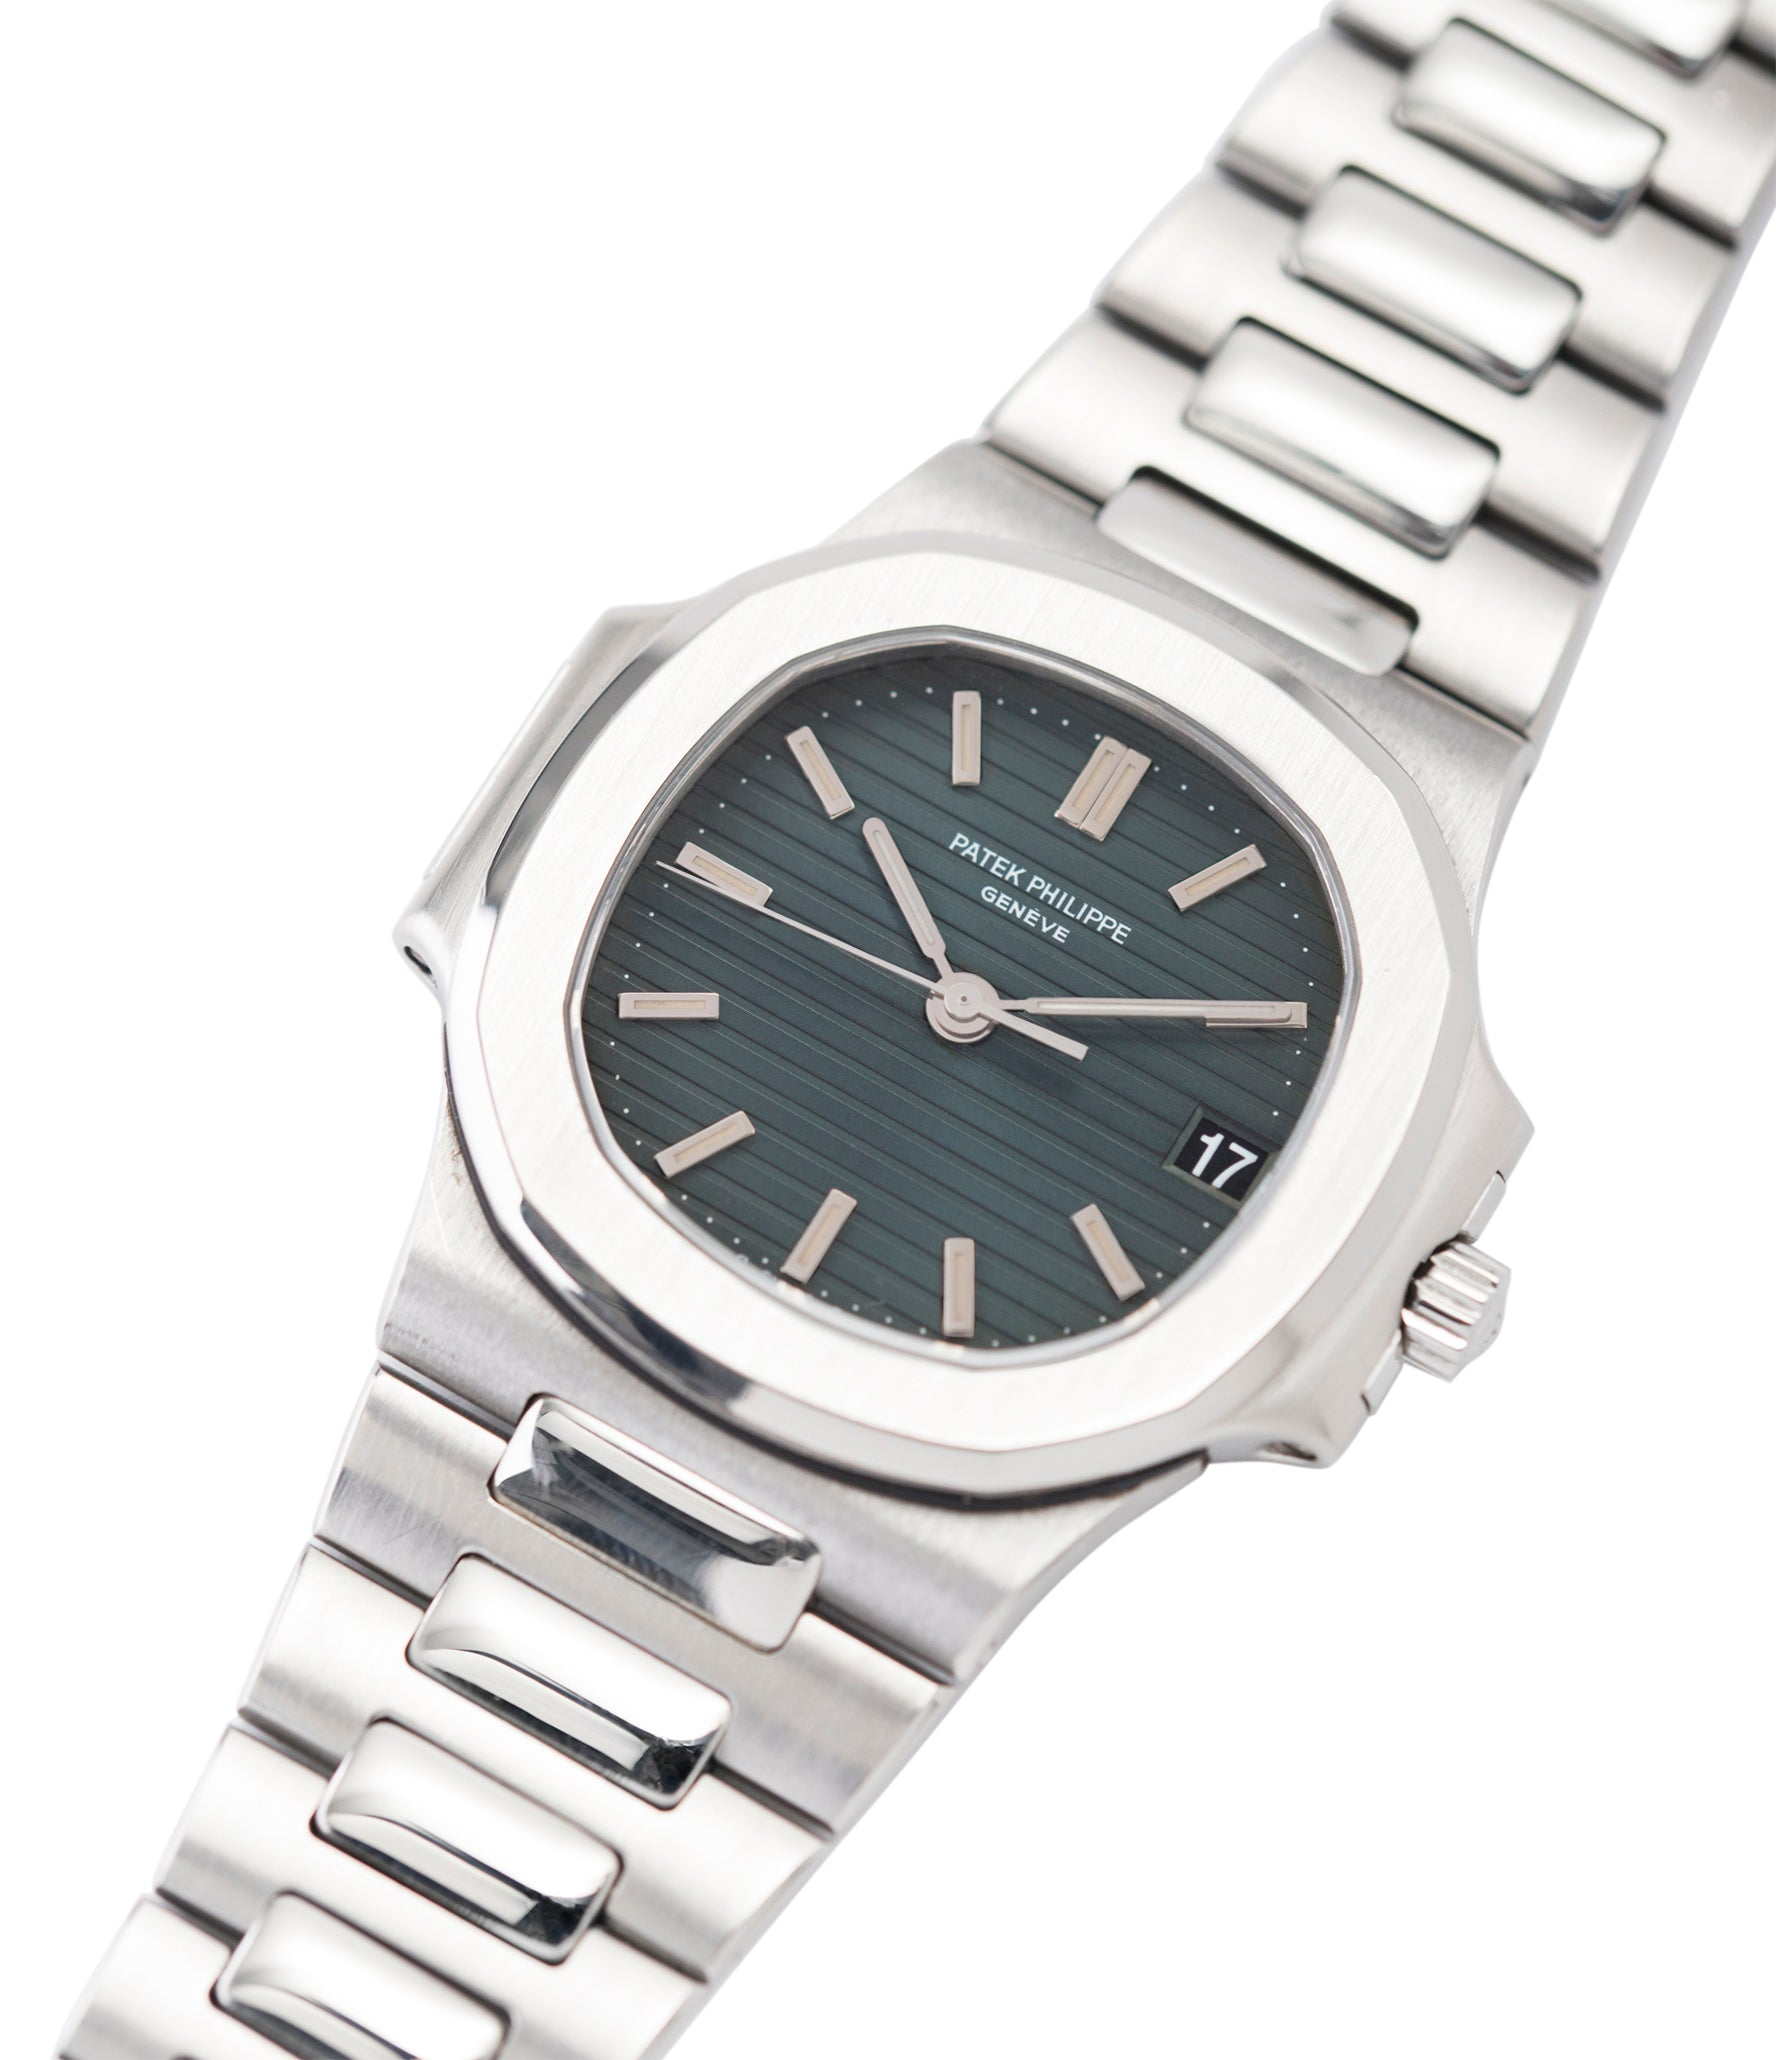 steel Patek Philippe Nautilus 3800/1 steel vintage luxury watch online at A Collected Man London UK specialised  seller of rare watches